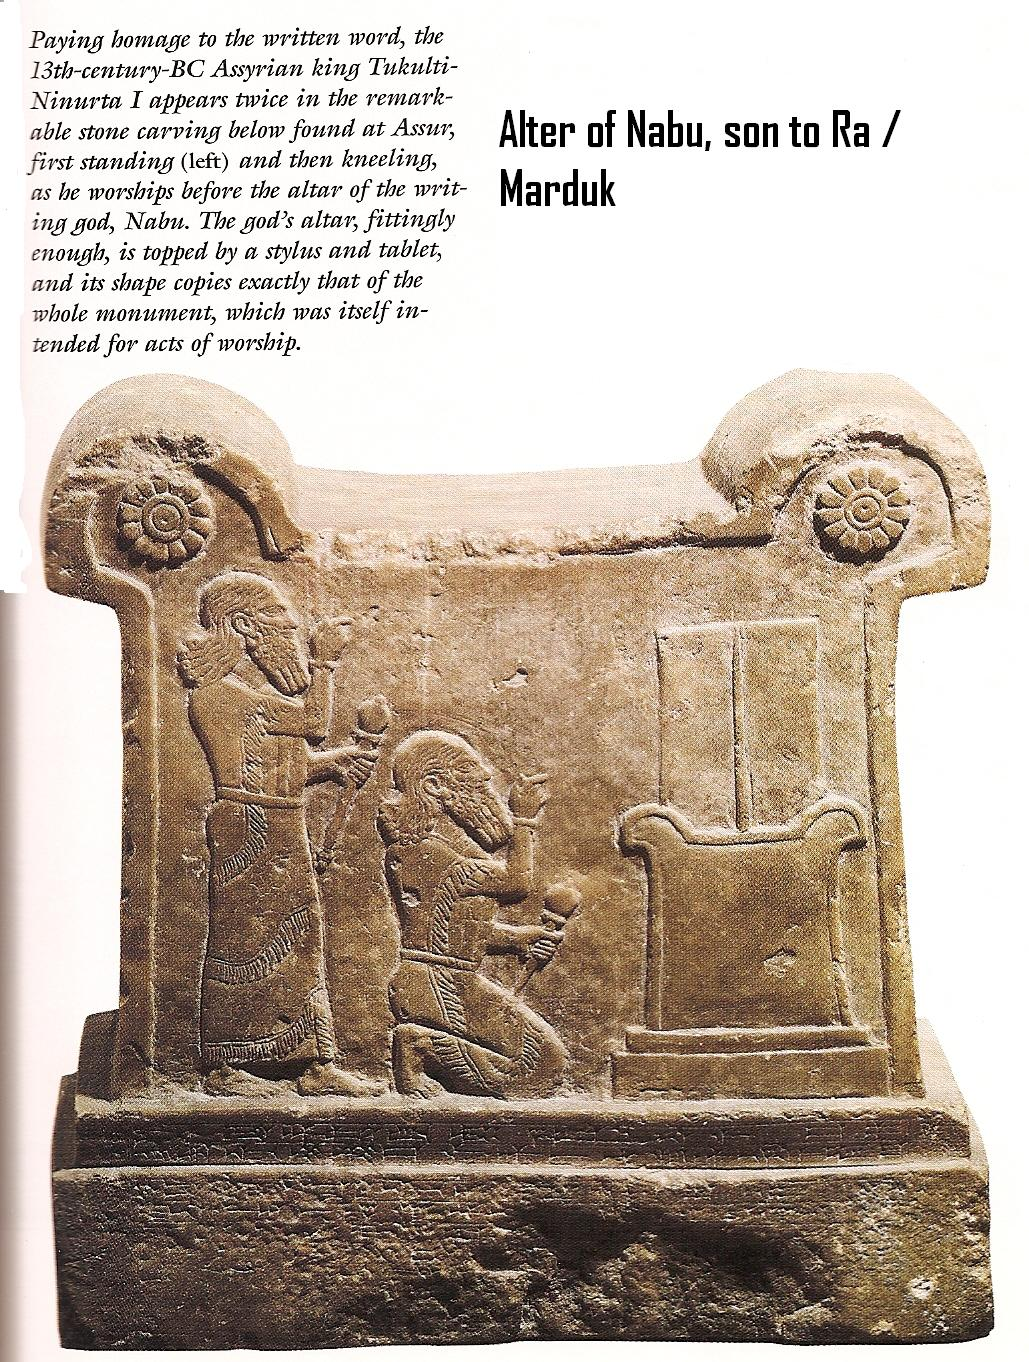 Tukulti-Ninurta I images on alter of the writing god Nabu